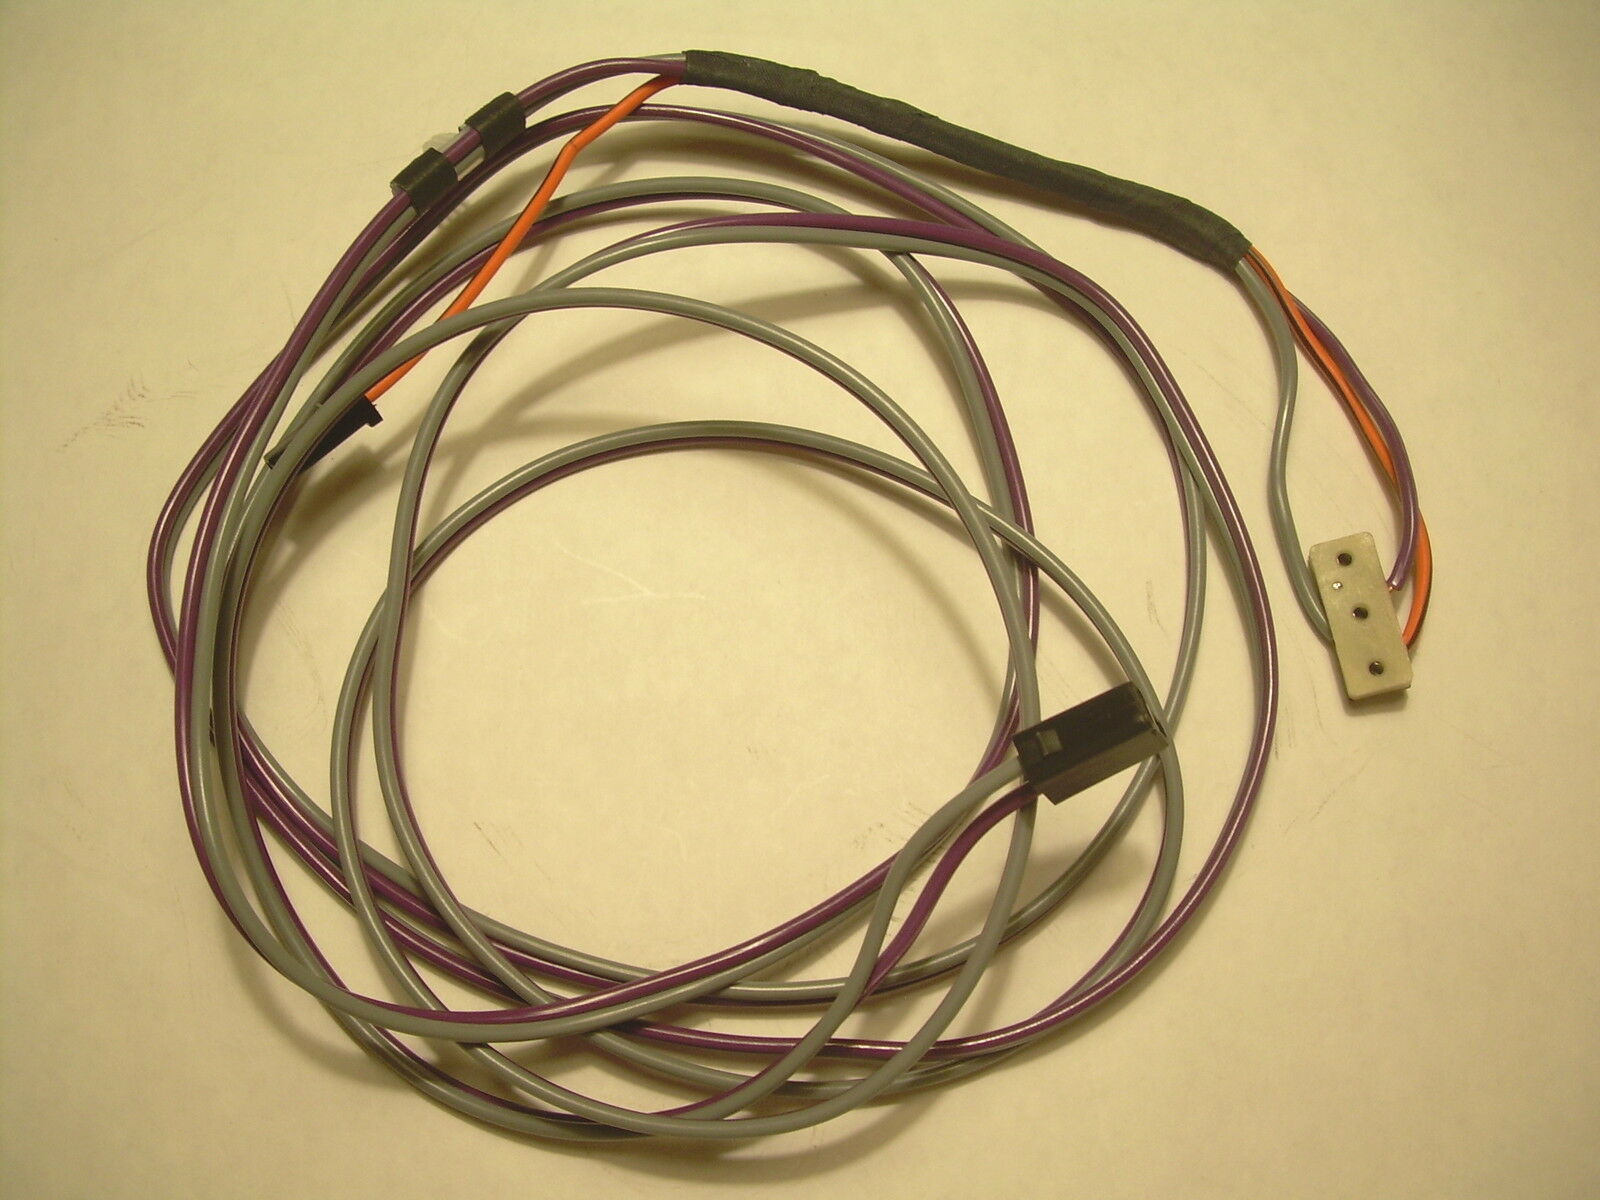 stereo wire harness for 1997 explorer wire harness for 1969 chevelle convertible | wiring library